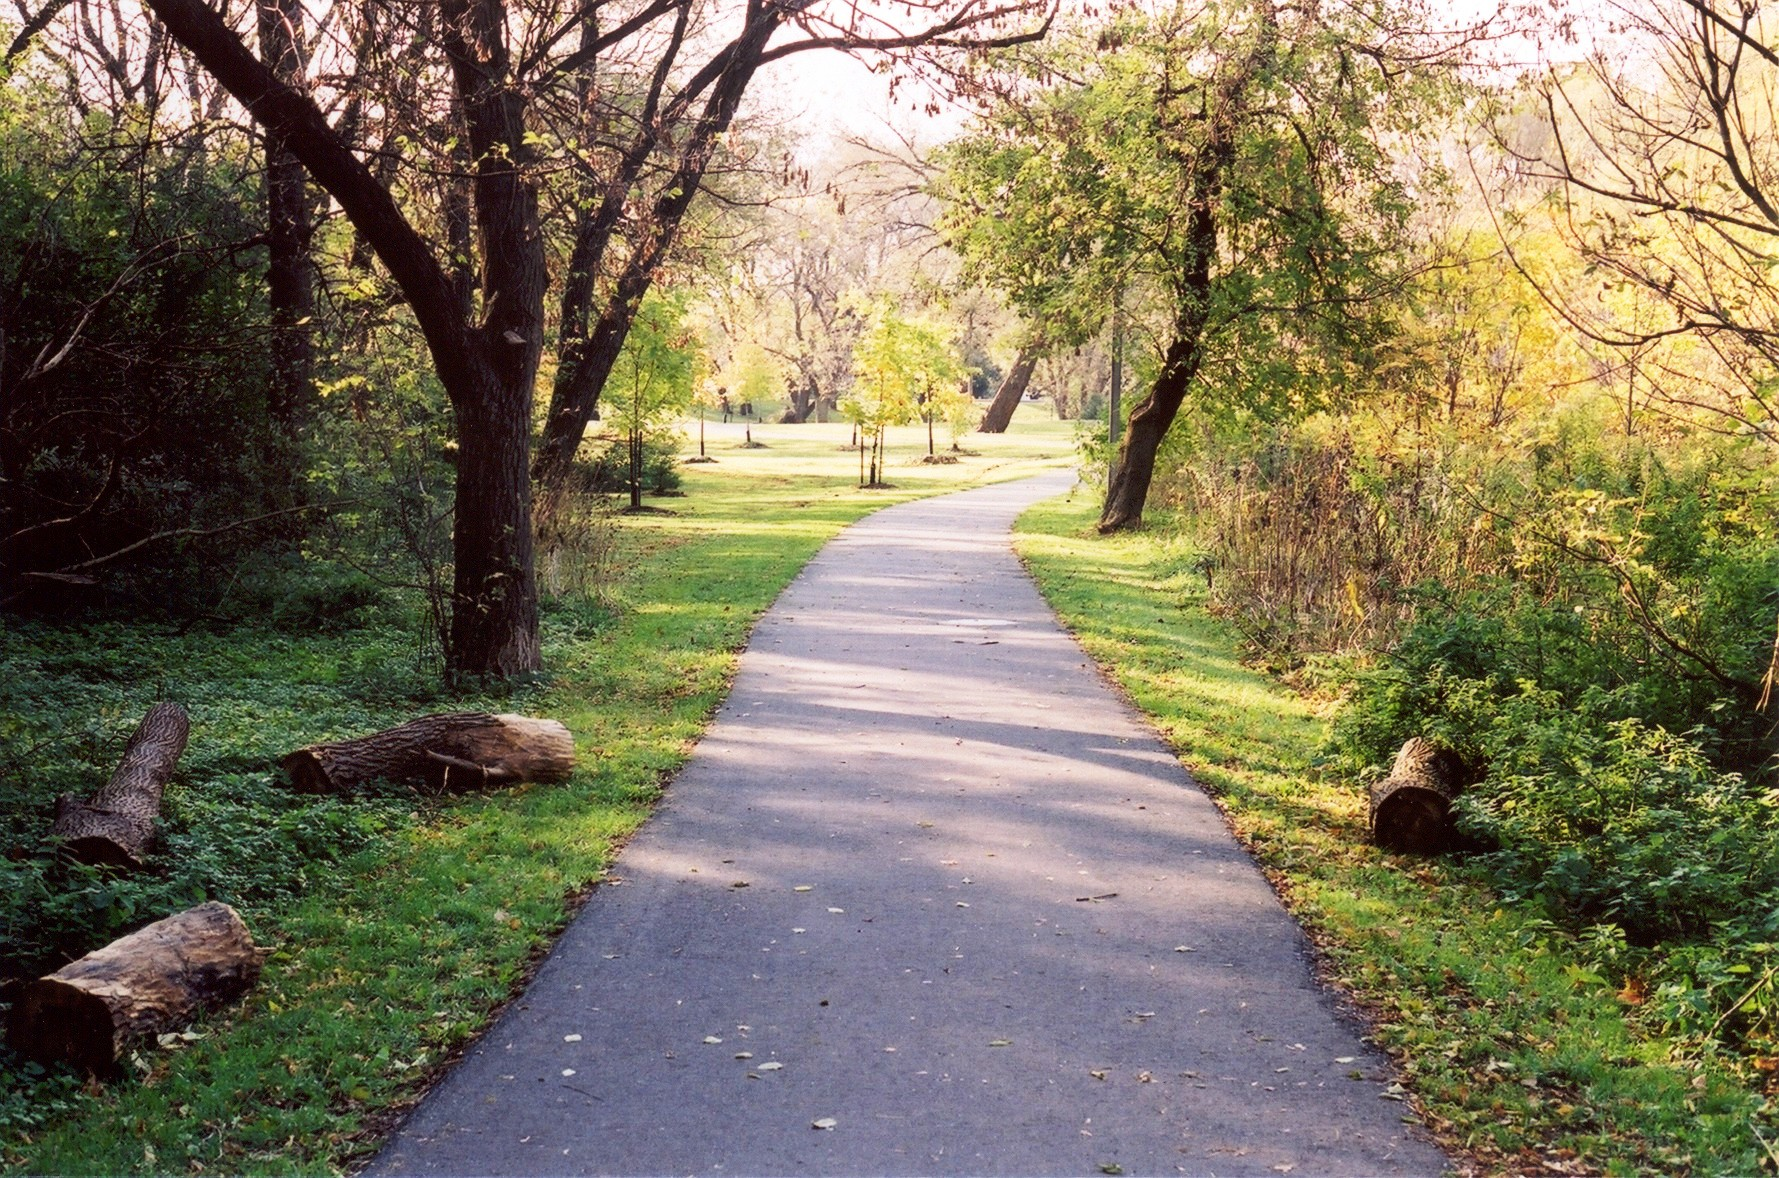 2 Hilldale Park, Chinguacousy Trail.jpg